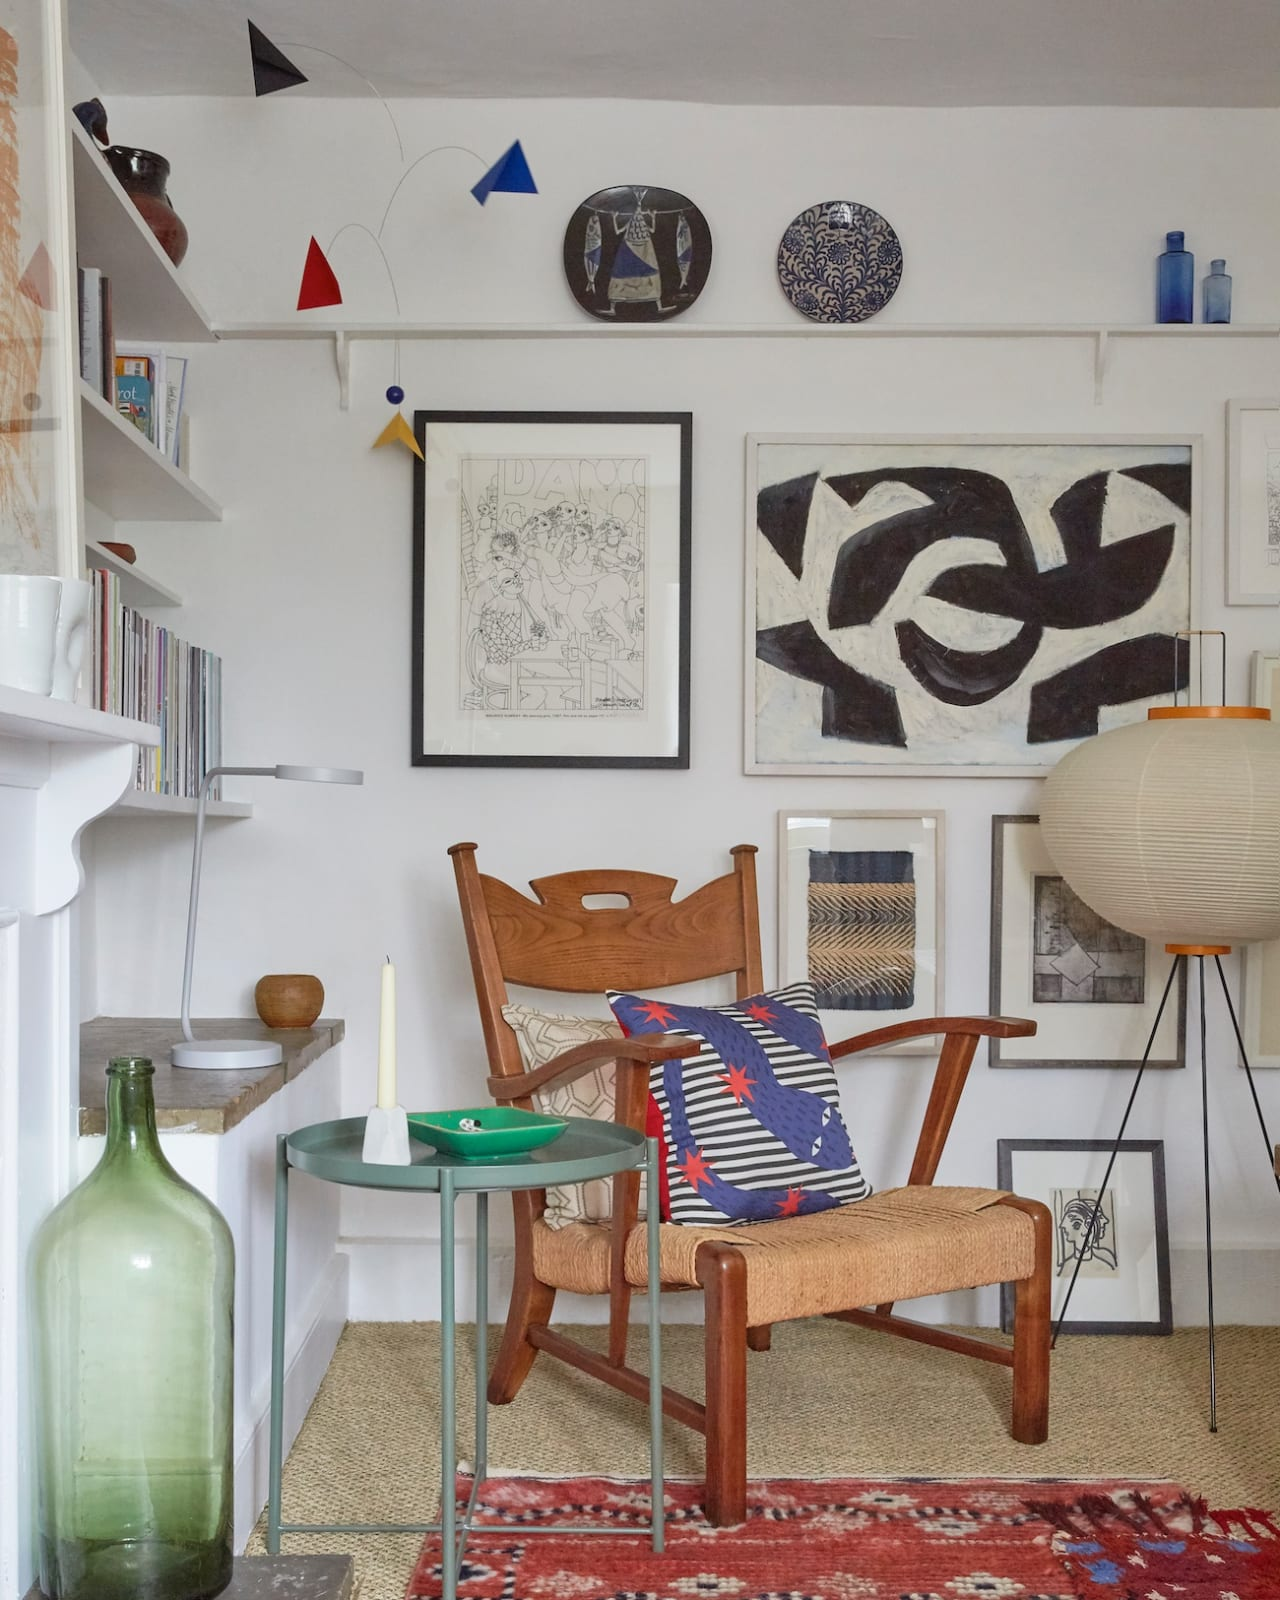 The shelf at picture-rail height was a relic of the former tenant, which Tobias kept as a display. Here a Noguchi lamp sits with an MMF rug and Paolo Buffa chair in the sitting room.